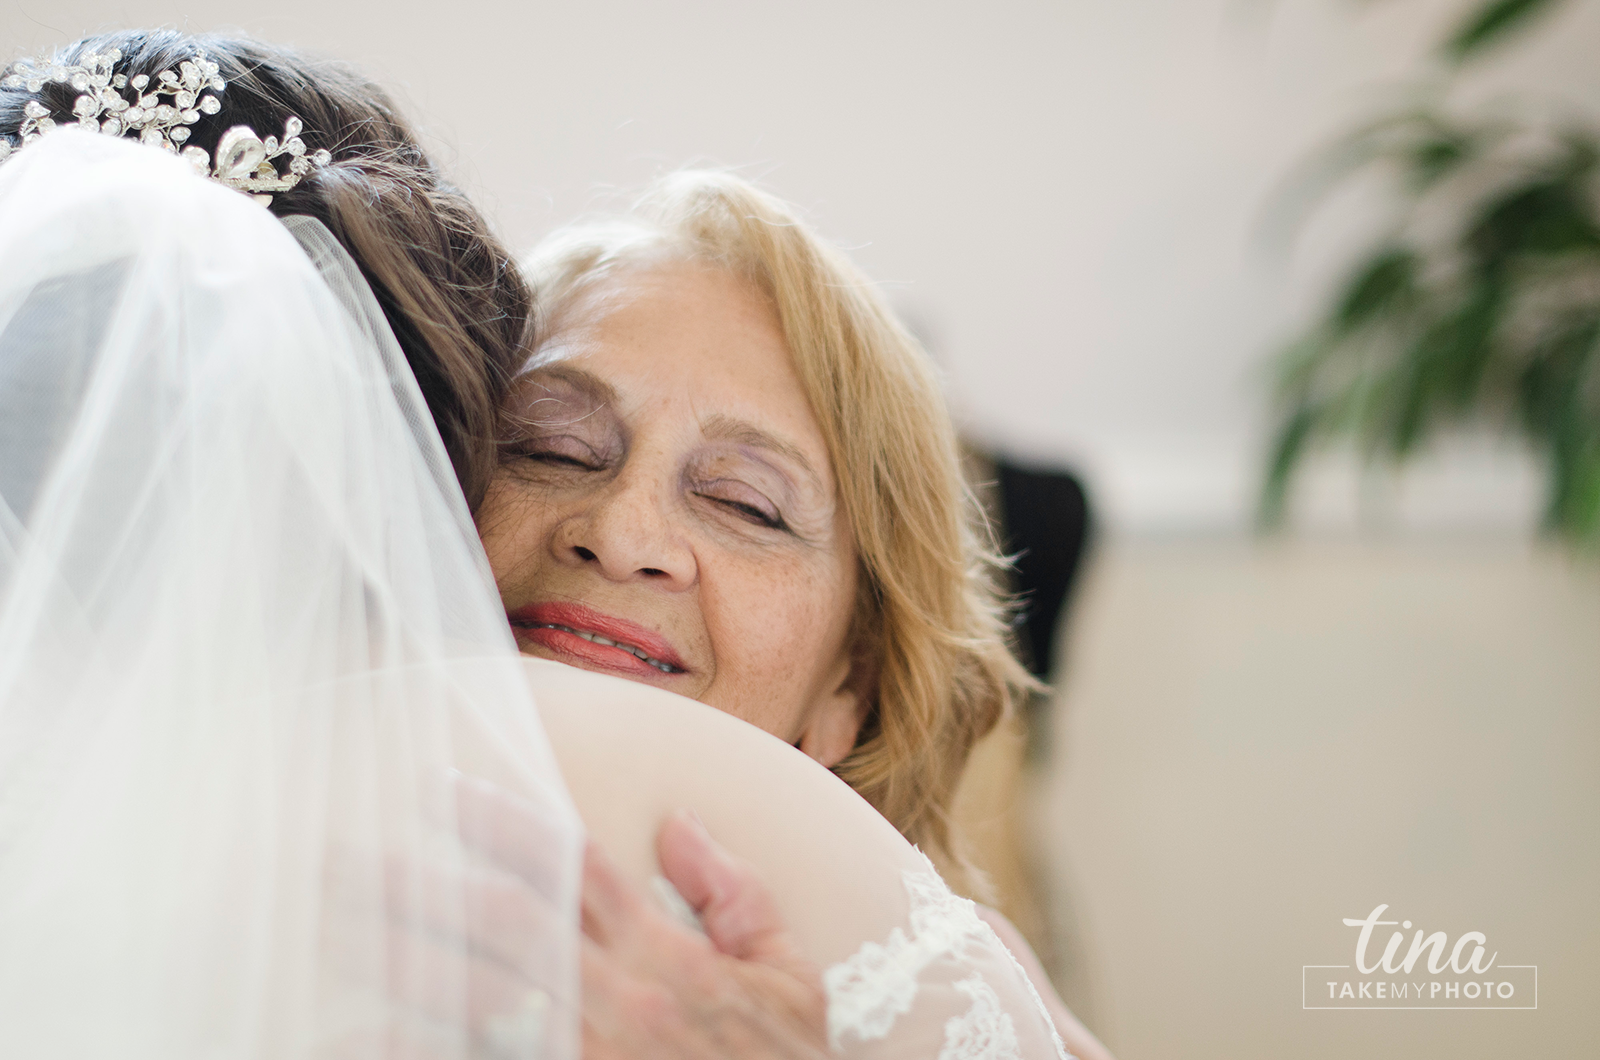 Grandmother-abuela-hug-bride-love-wedding-day-family-wedding-photographer-brandermill-country-club-virginia